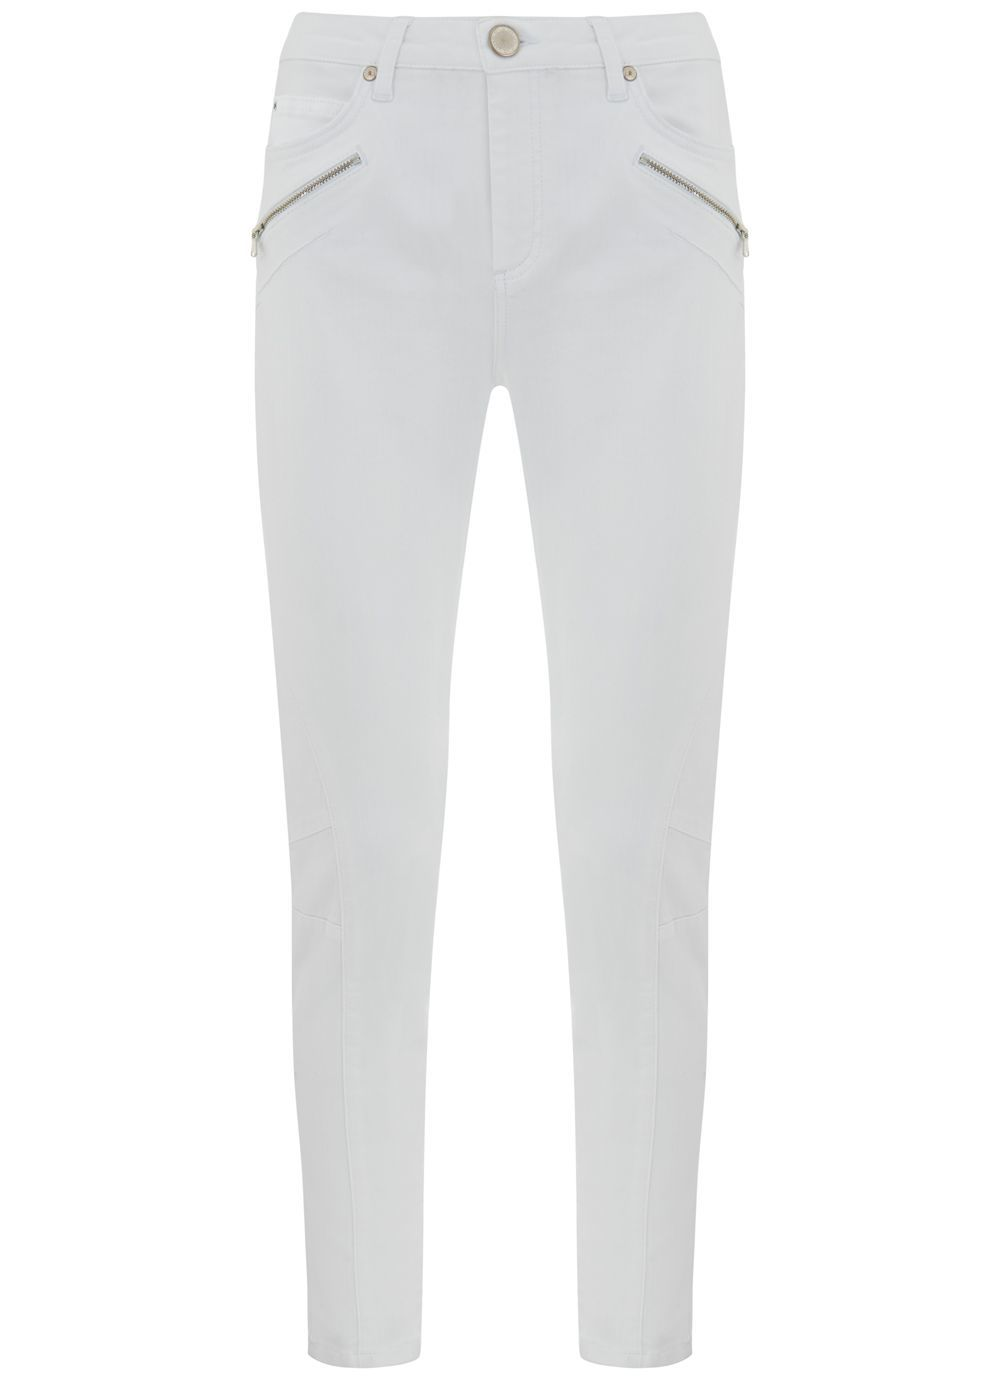 Darby White Biker Skinny Jean, White - style: skinny leg; length: standard; pattern: plain; waist: mid/regular rise; predominant colour: white; occasions: casual, creative work; fibres: cotton - stretch; texture group: denim; pattern type: fabric; embellishment: zips; season: s/s 2016; wardrobe: highlight